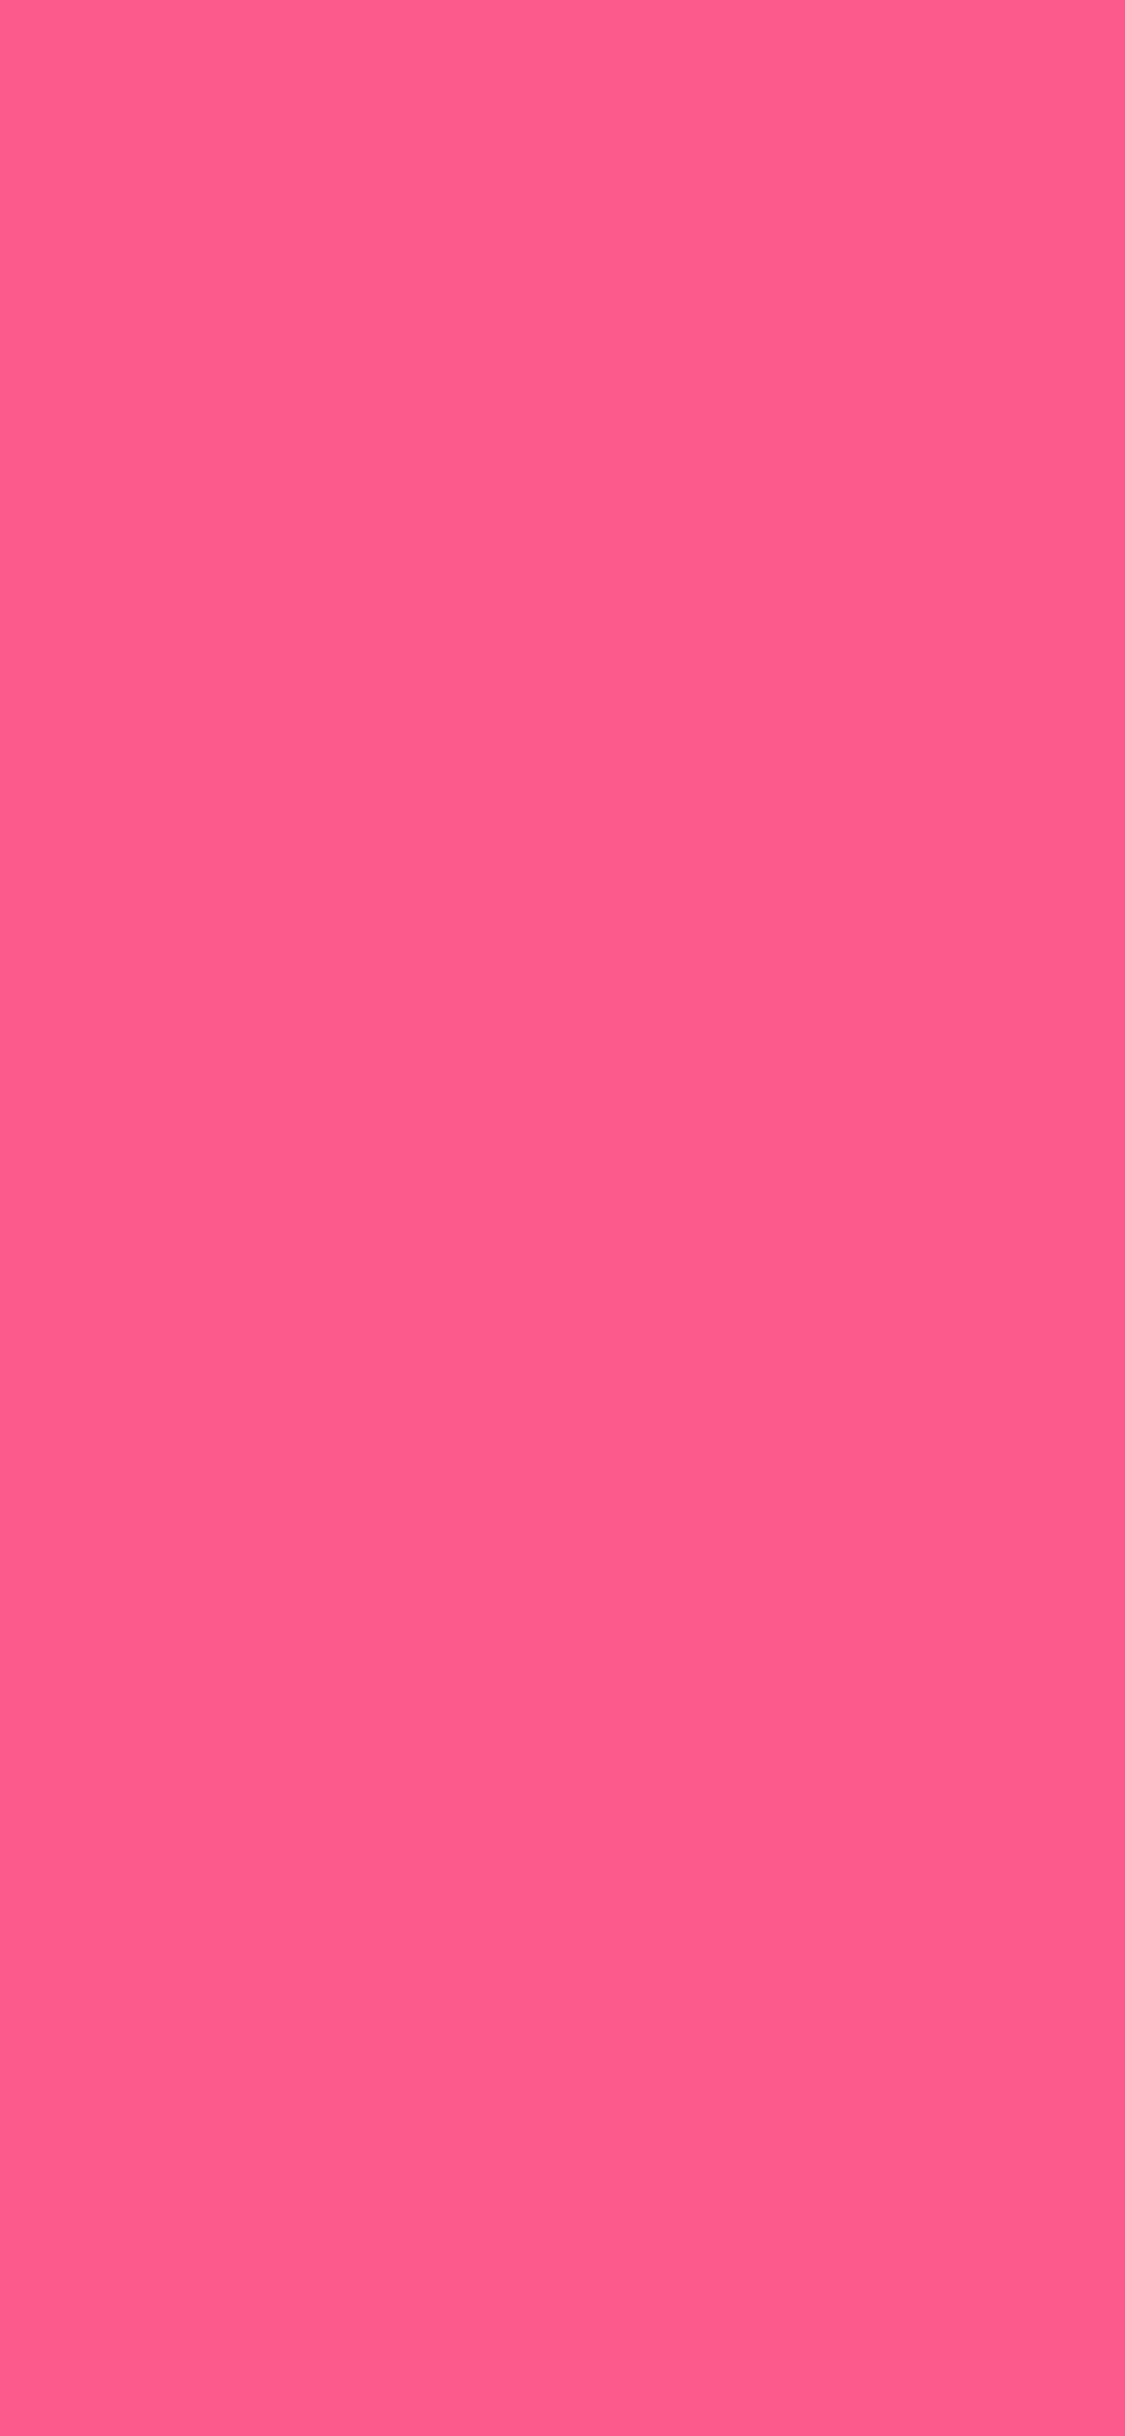 1125x2436 Strawberry Solid Color Background